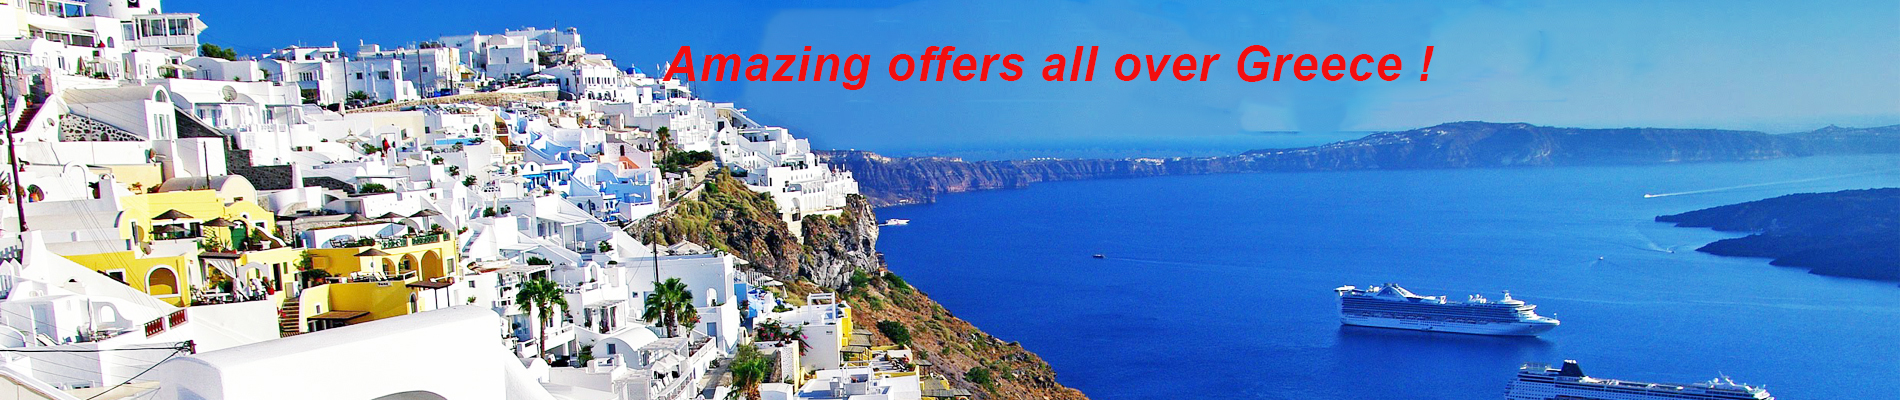 santorini-slider-amazing-offers